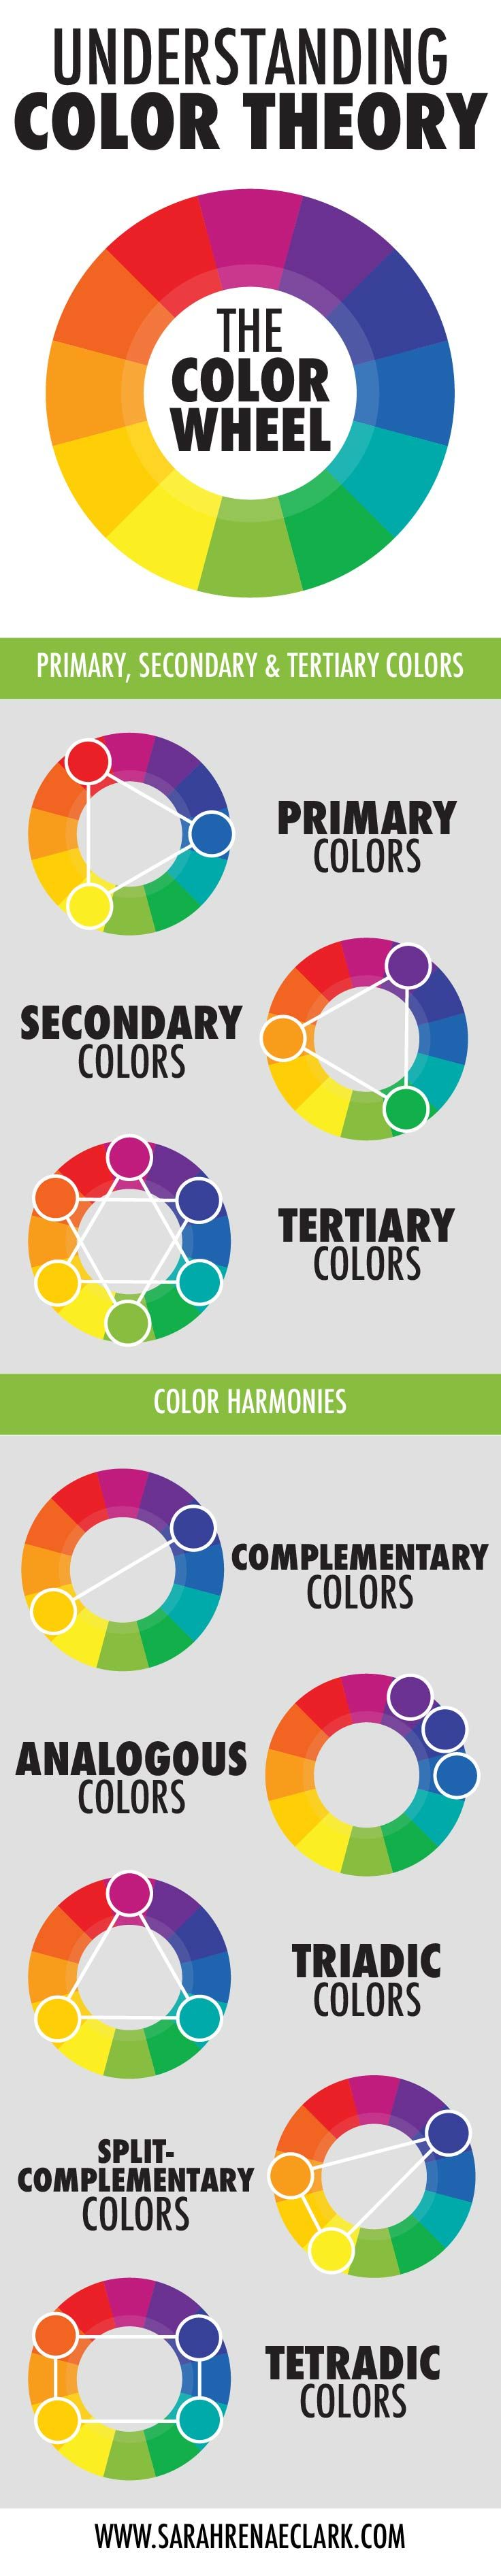 Color wheel complementary colors - Learn About The Color Wheel Primary Colors Secondary Colors Tertiary Colors And Color